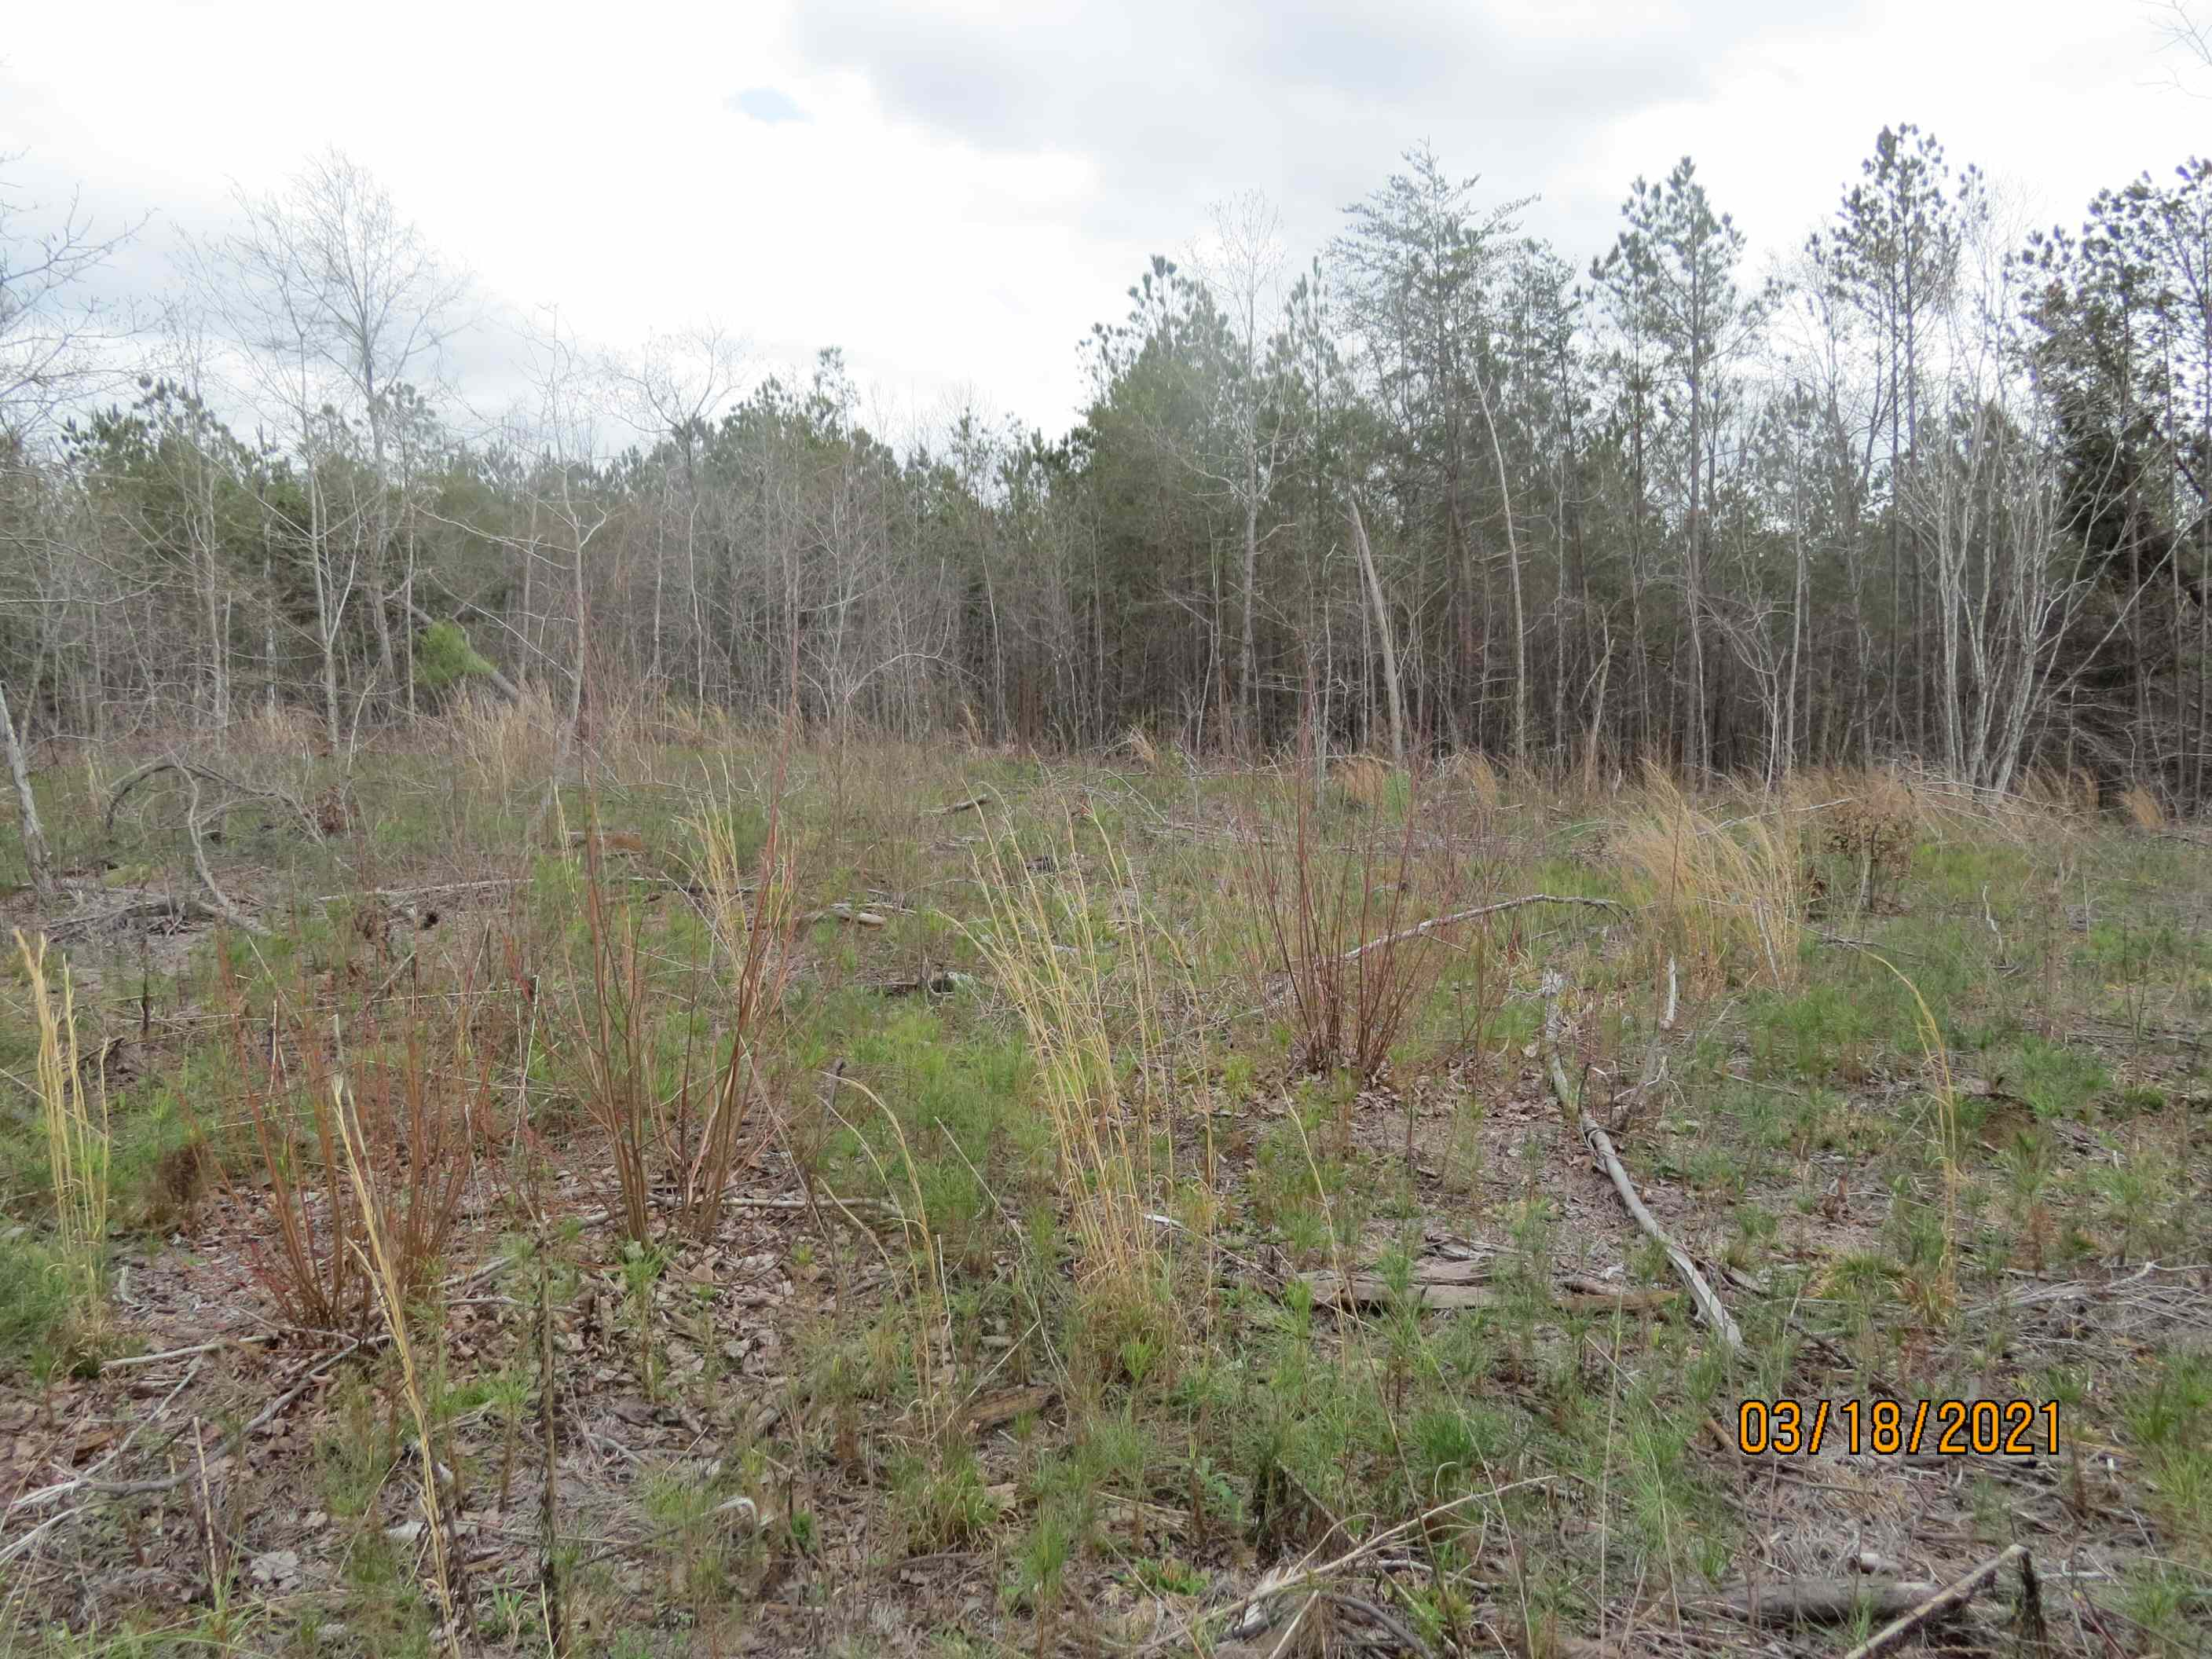 Another potential house site. Notice the large amount of volunteer pine seedlings